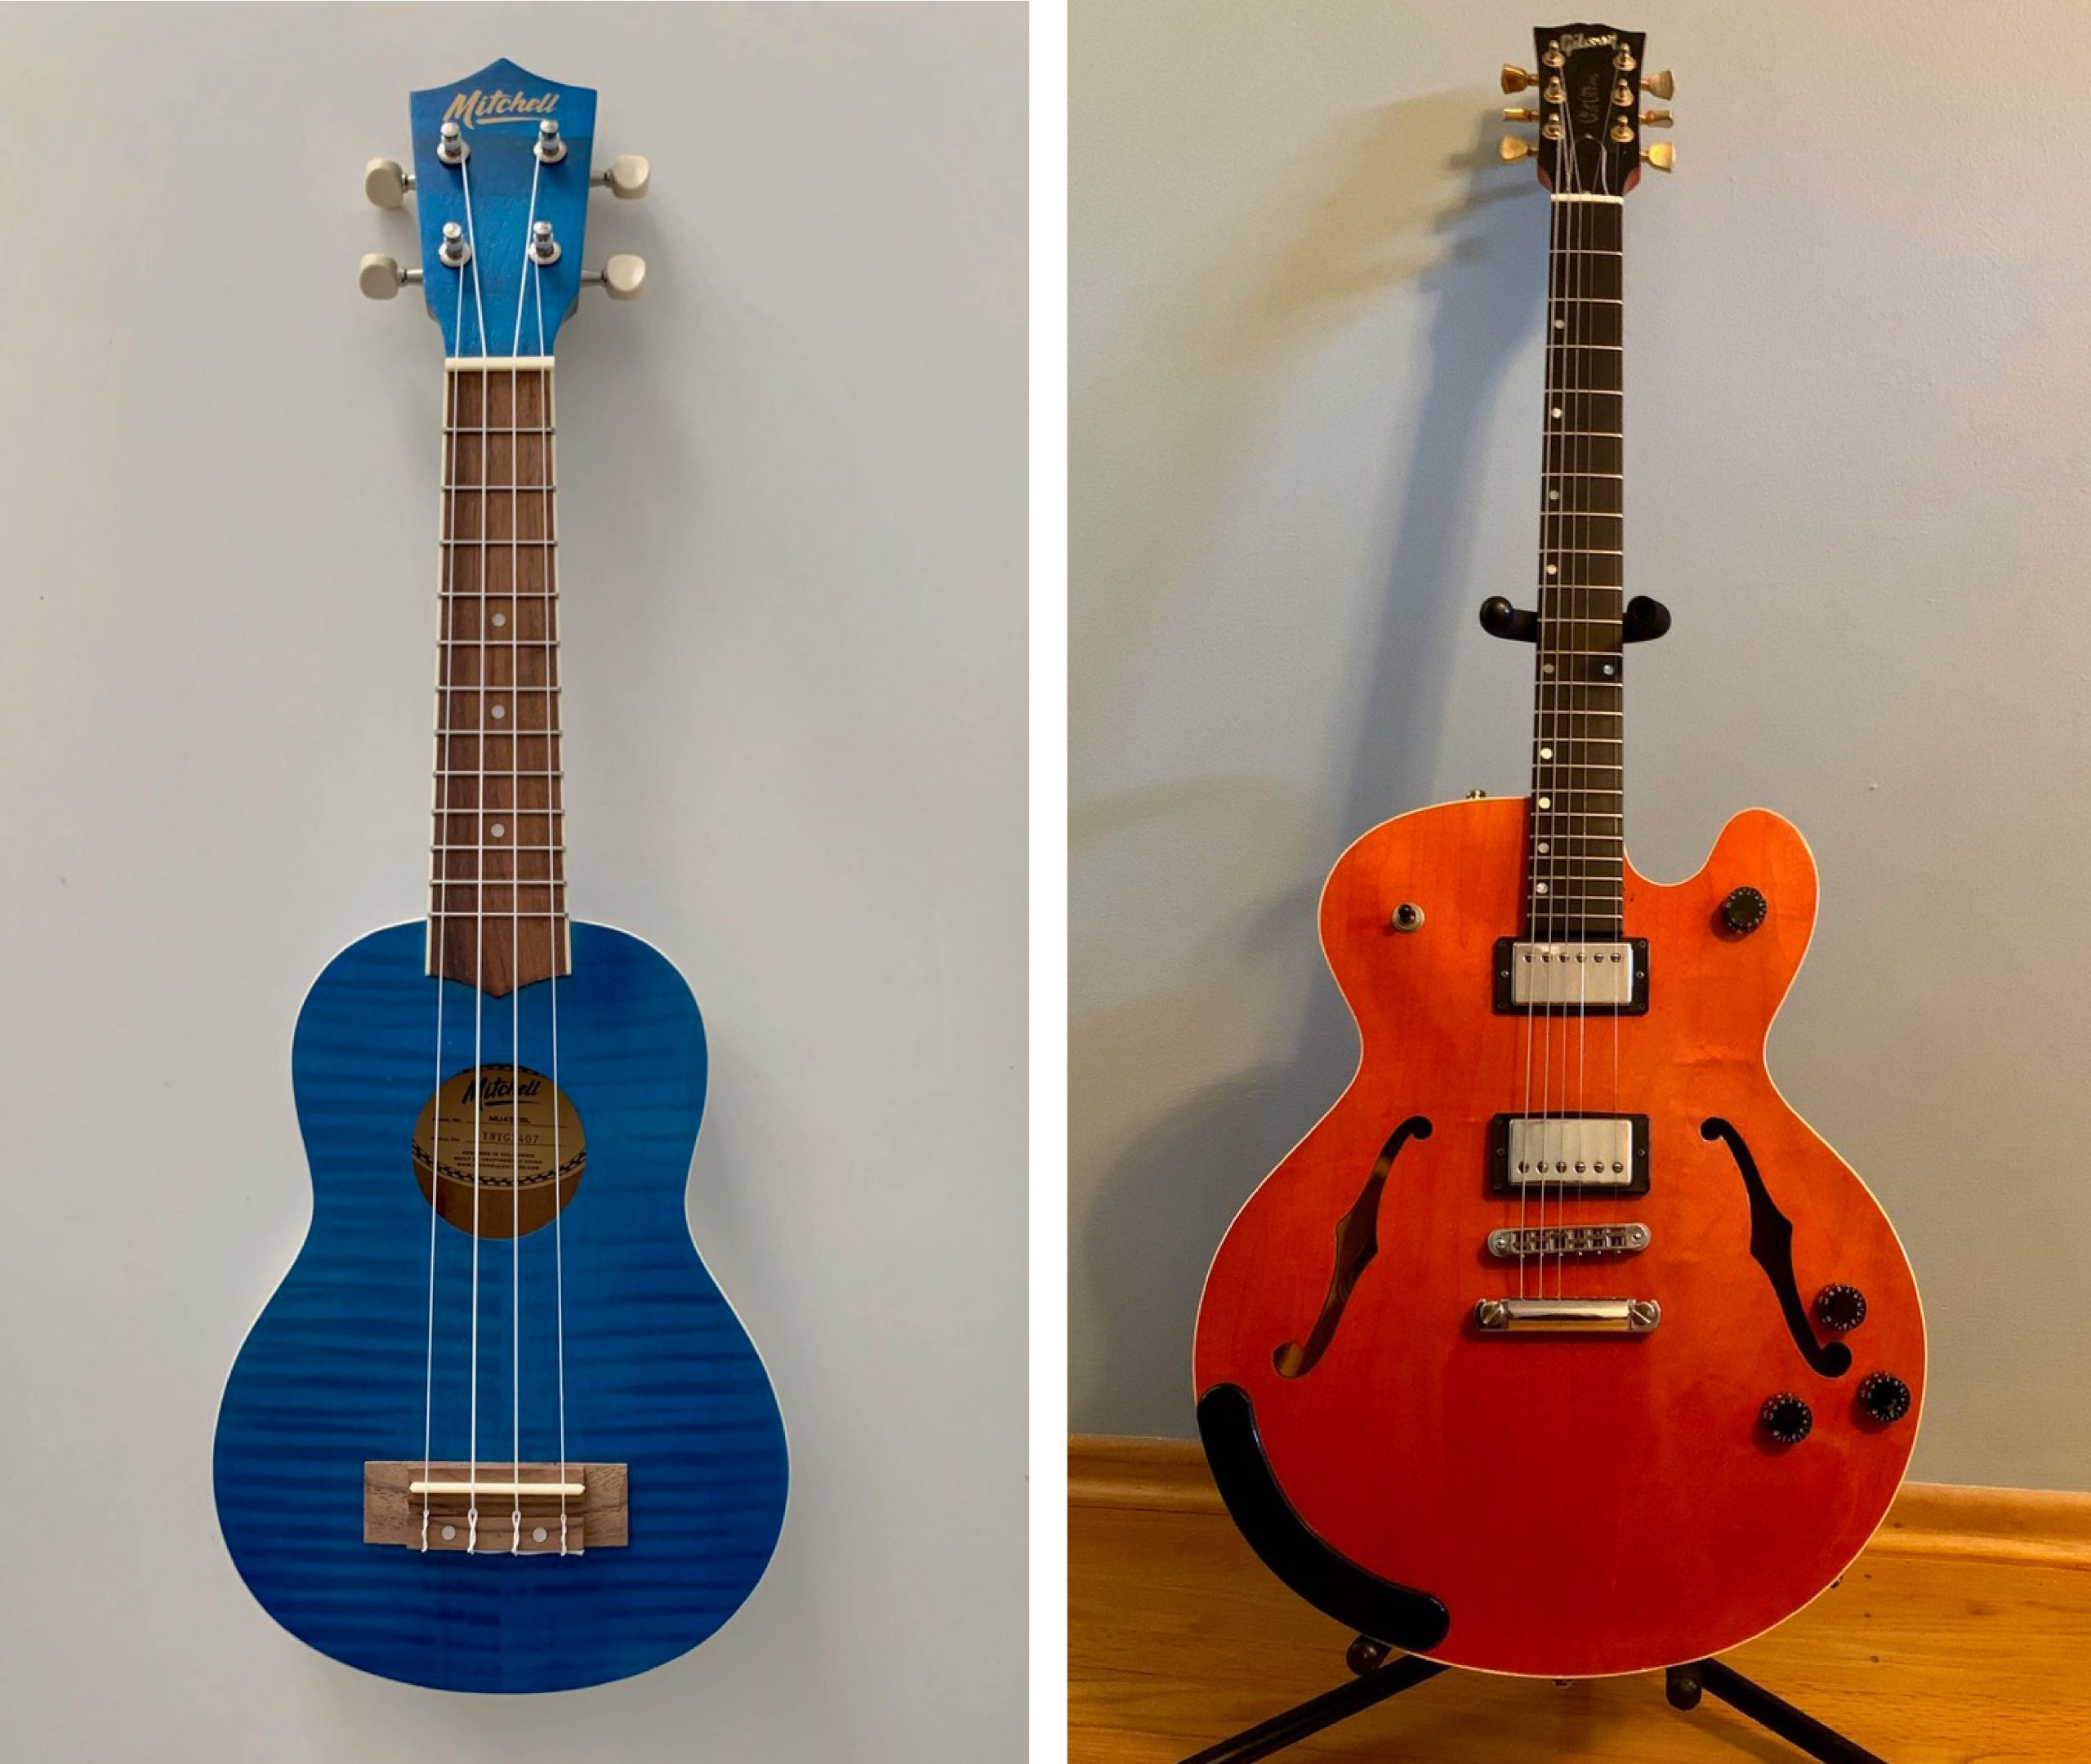 Child's guitar and Gibson Chet Atkins Tennessean